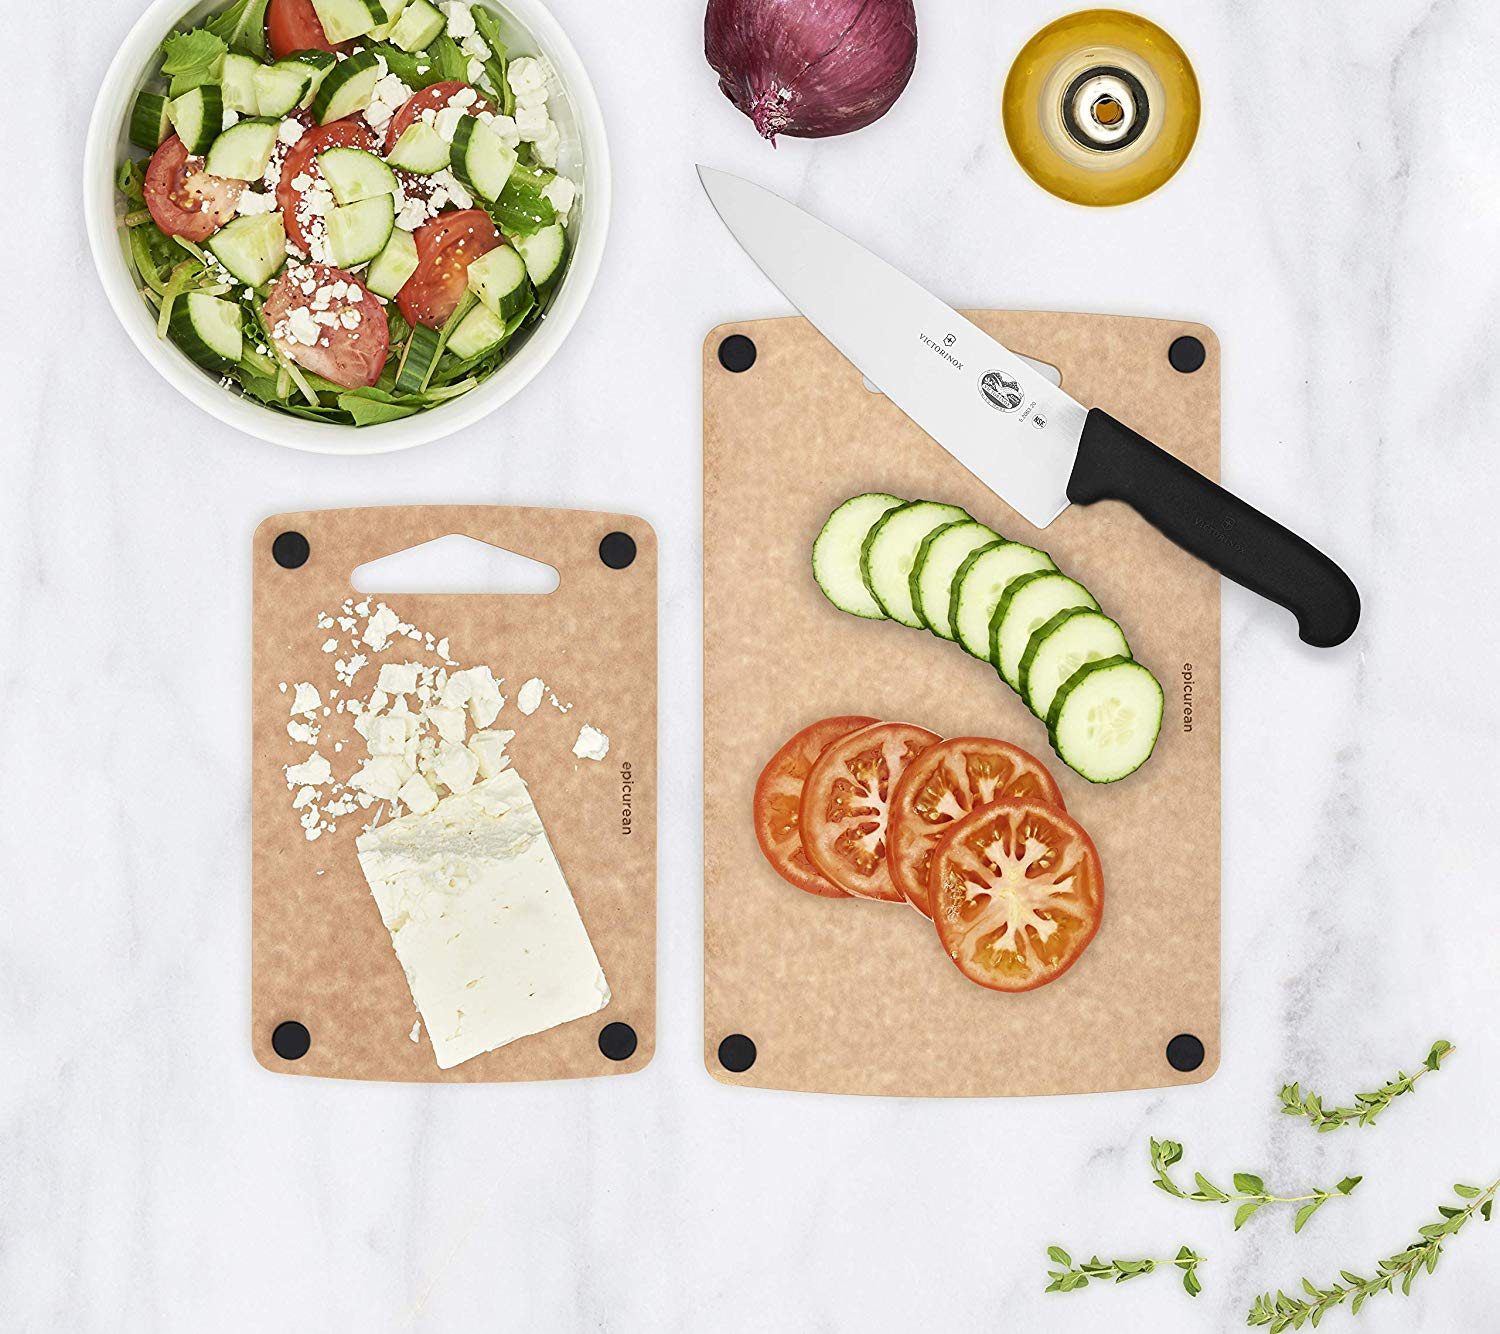 Nonslip Cutting Boards by Epicurean, 2 Piece